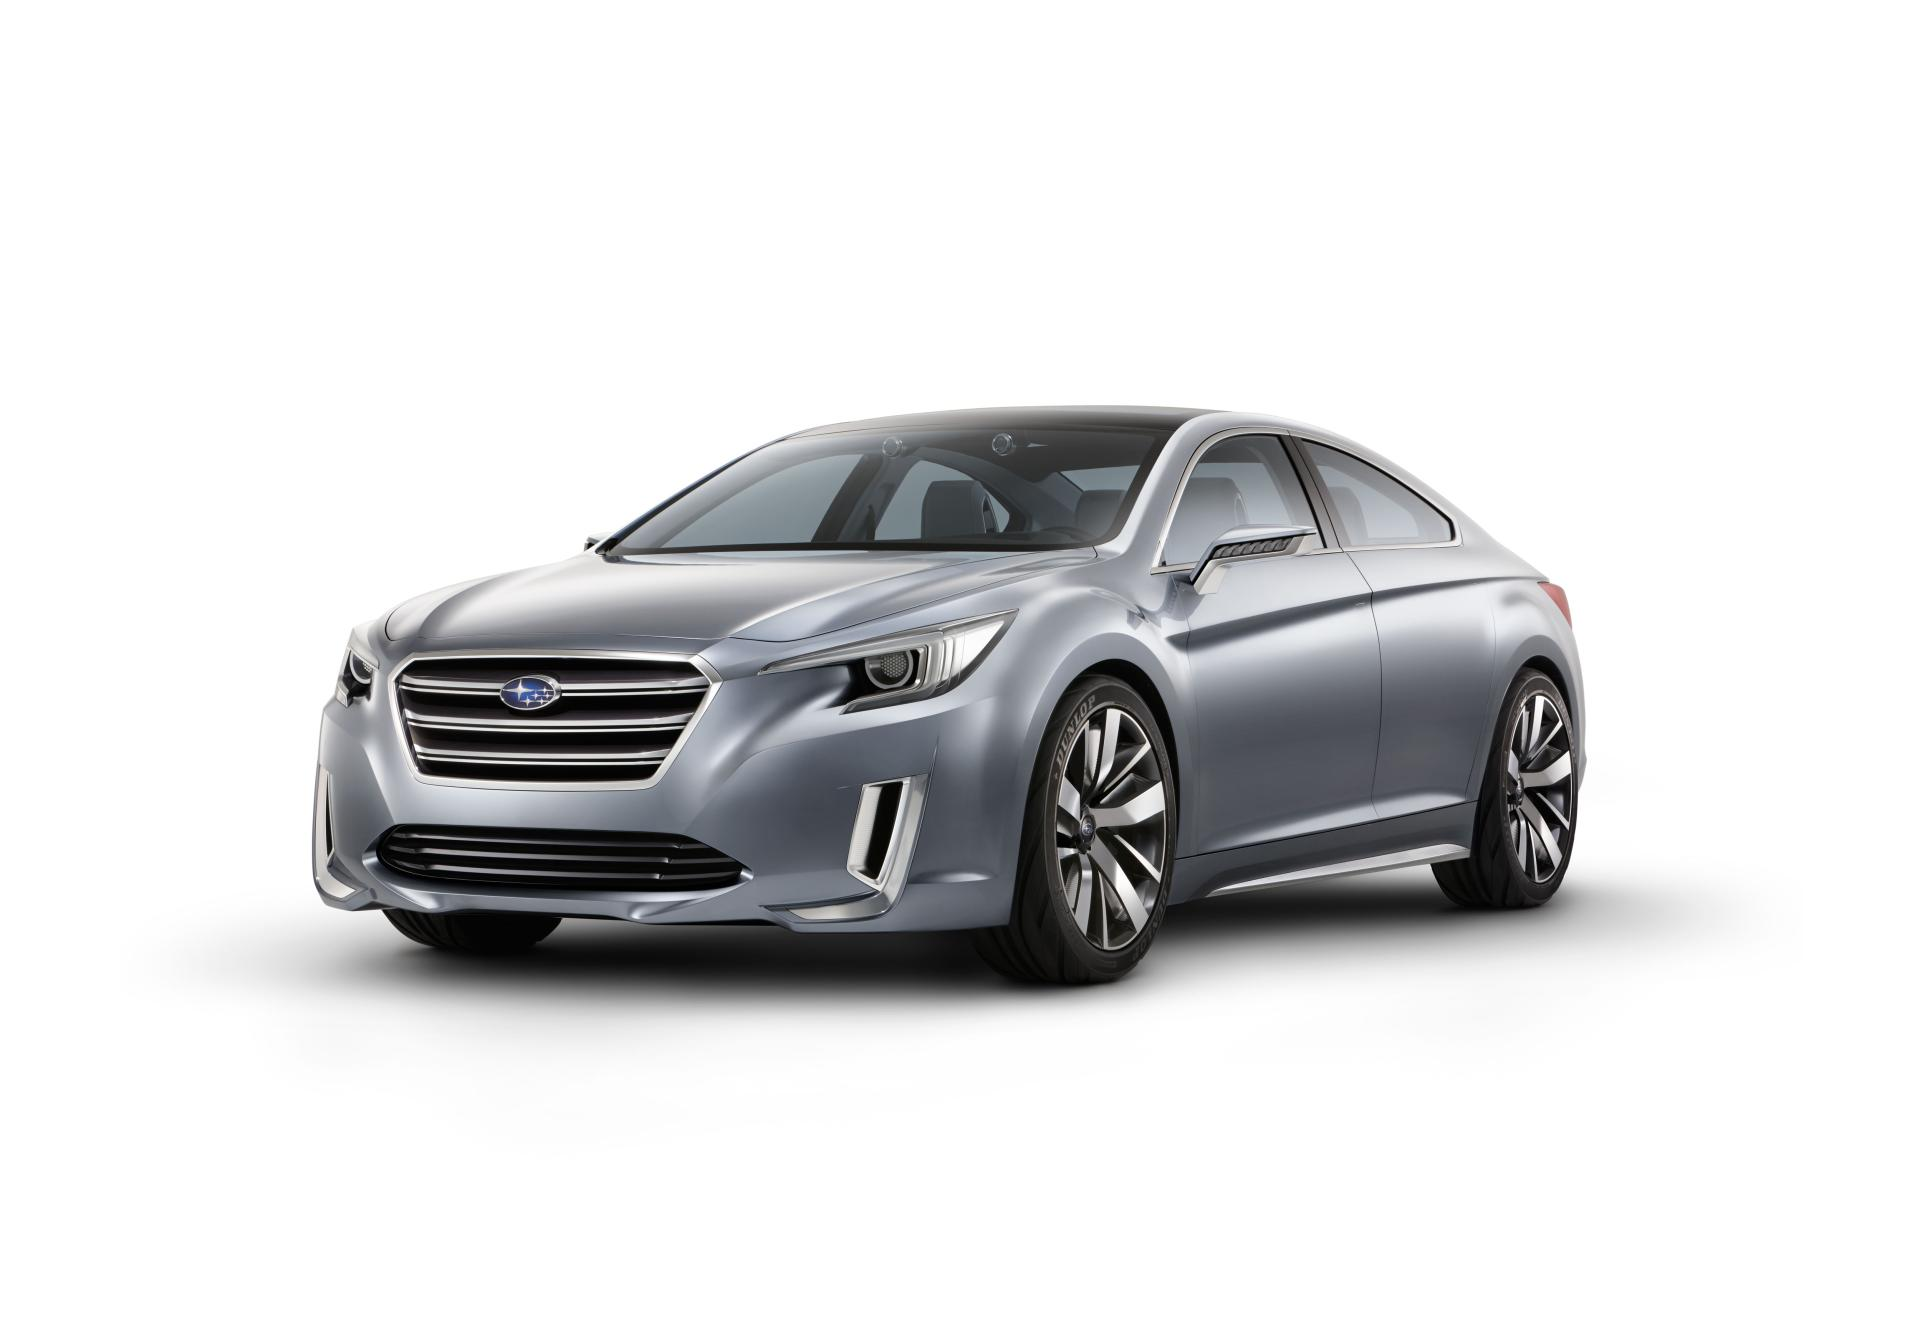 2015 subaru legacy concept pictures news research pricing. Black Bedroom Furniture Sets. Home Design Ideas